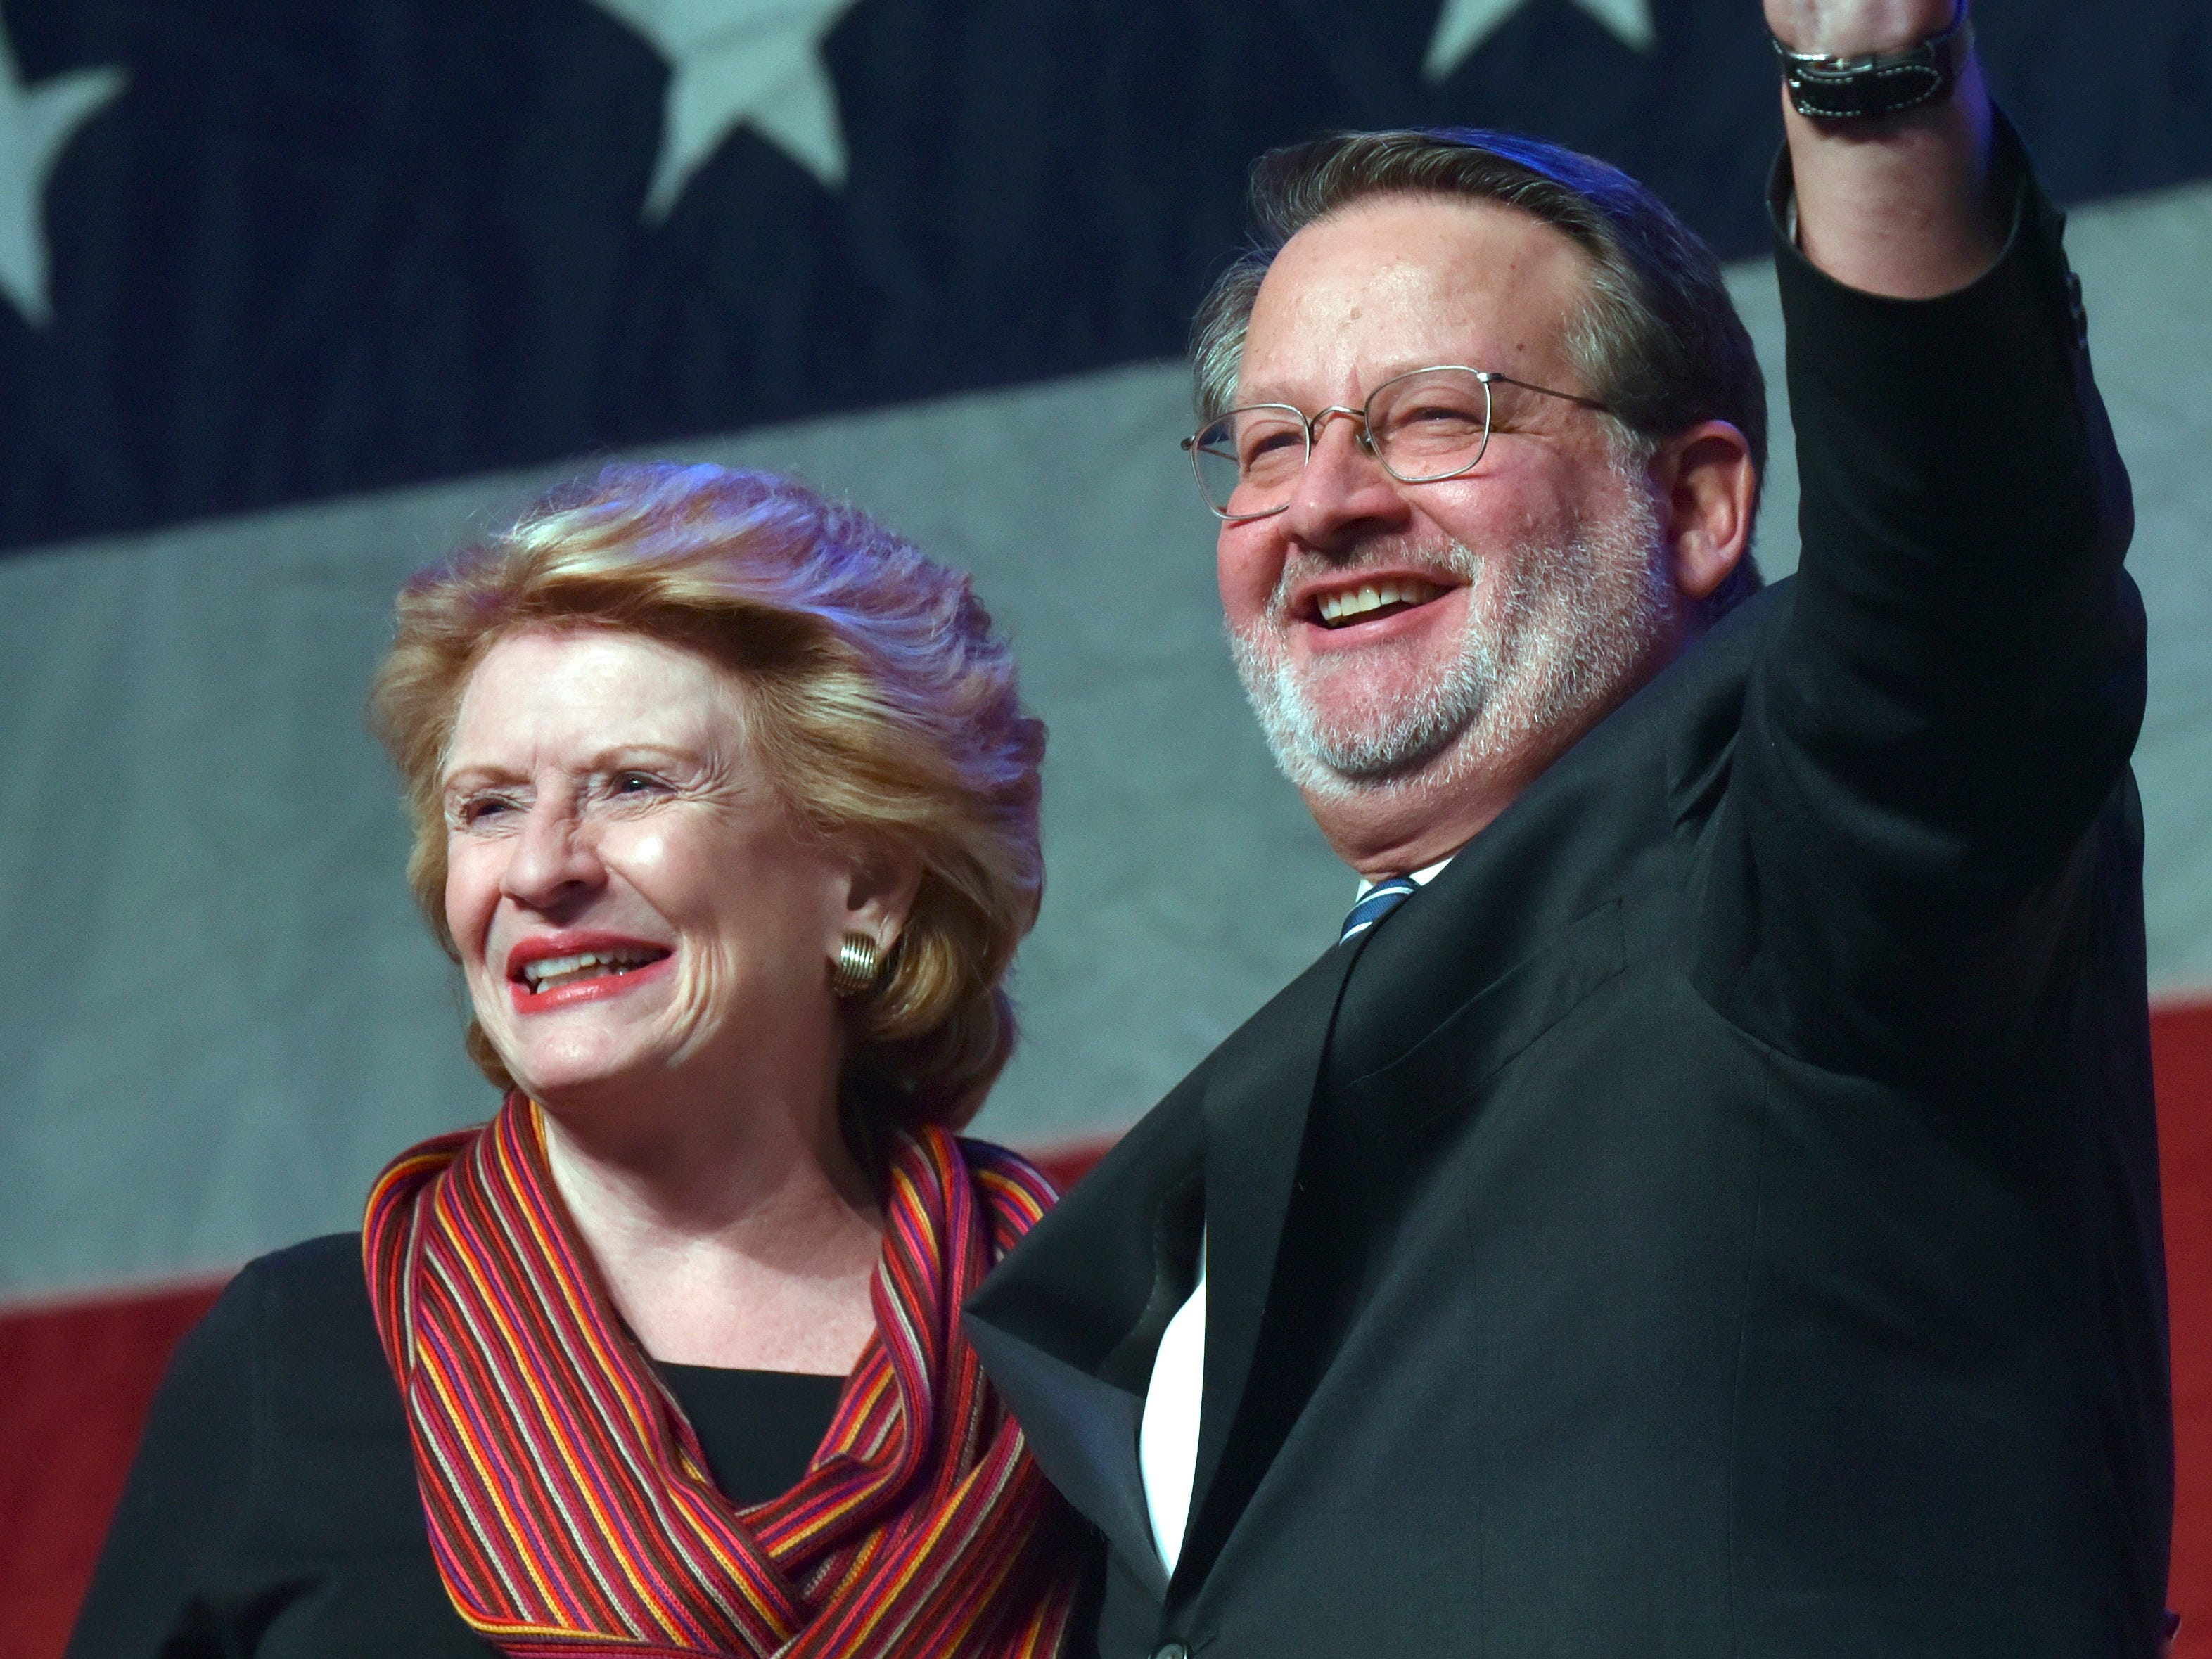 U.S. Senators Debbie Stabenow, left, and Gary Peters briefly stand together on stage after she introduces him after her speech and before his.